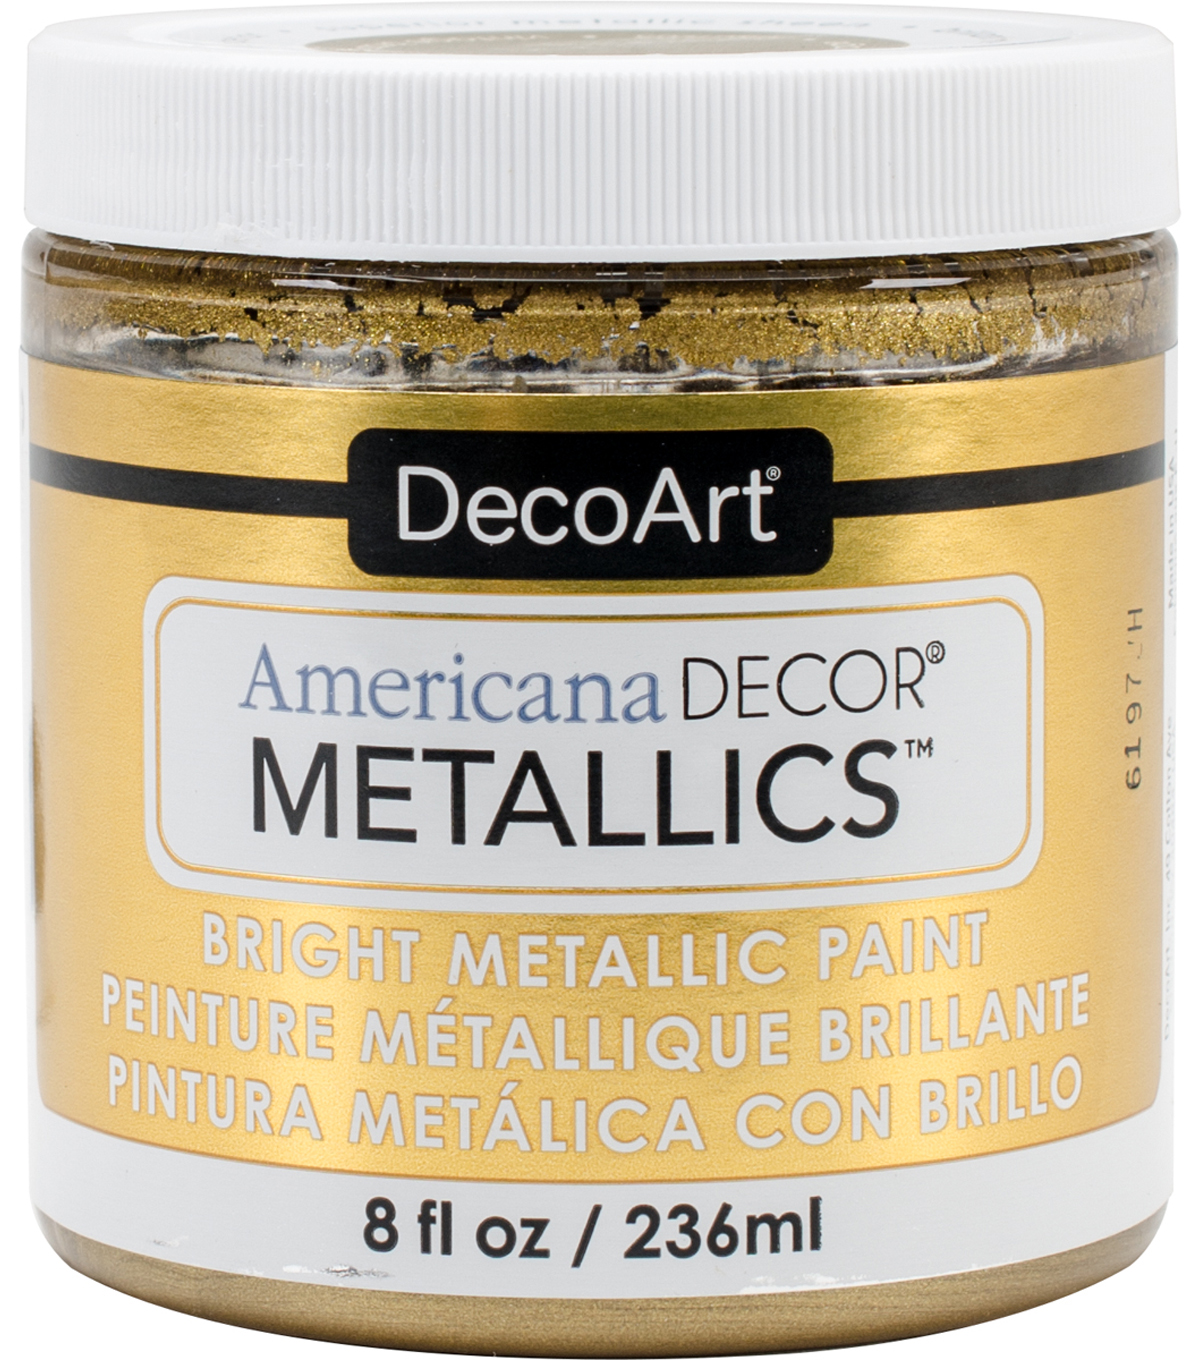 DecoArt Americana Decor Metallics 8oz Paint